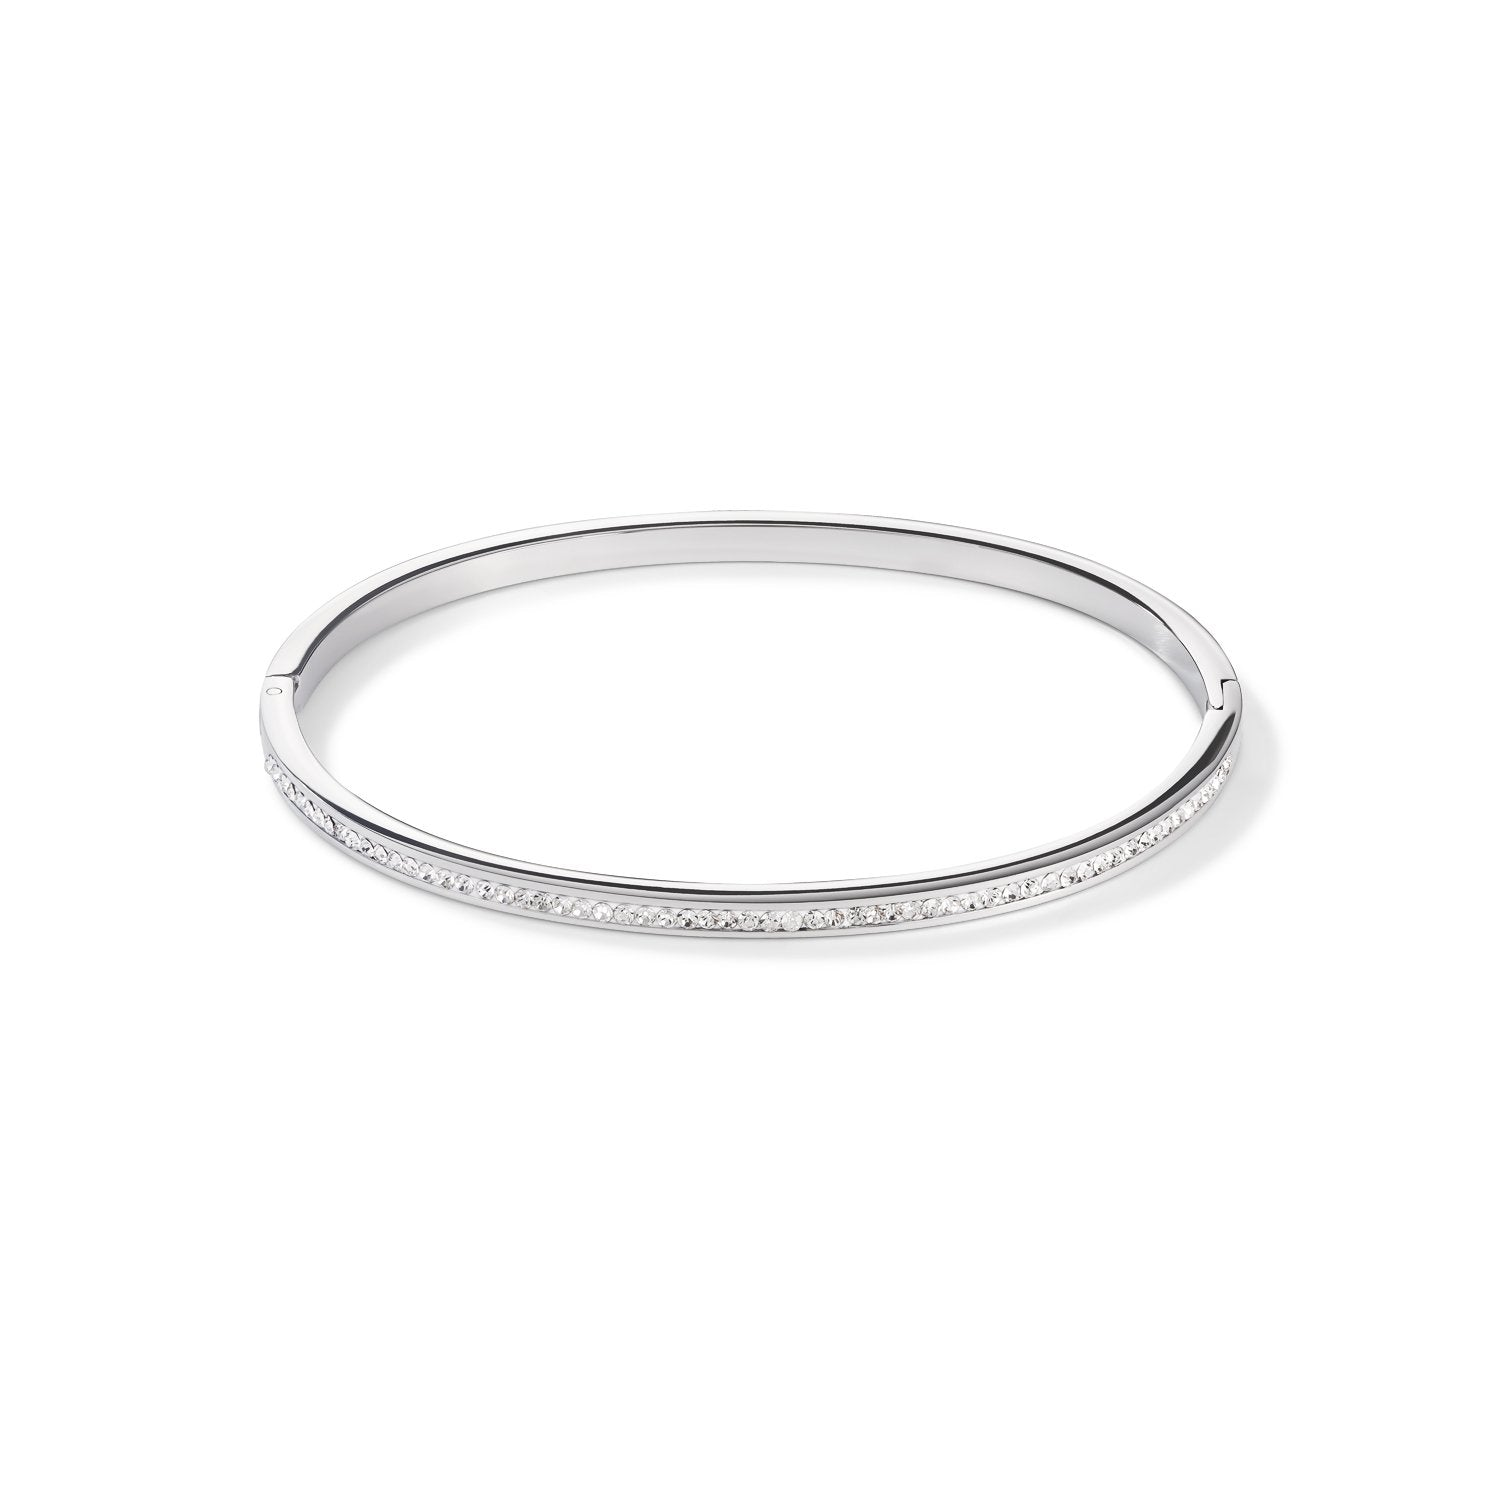 Coeur de Lion Bangle with Crystals Jewellery Coeur de Lion Standard